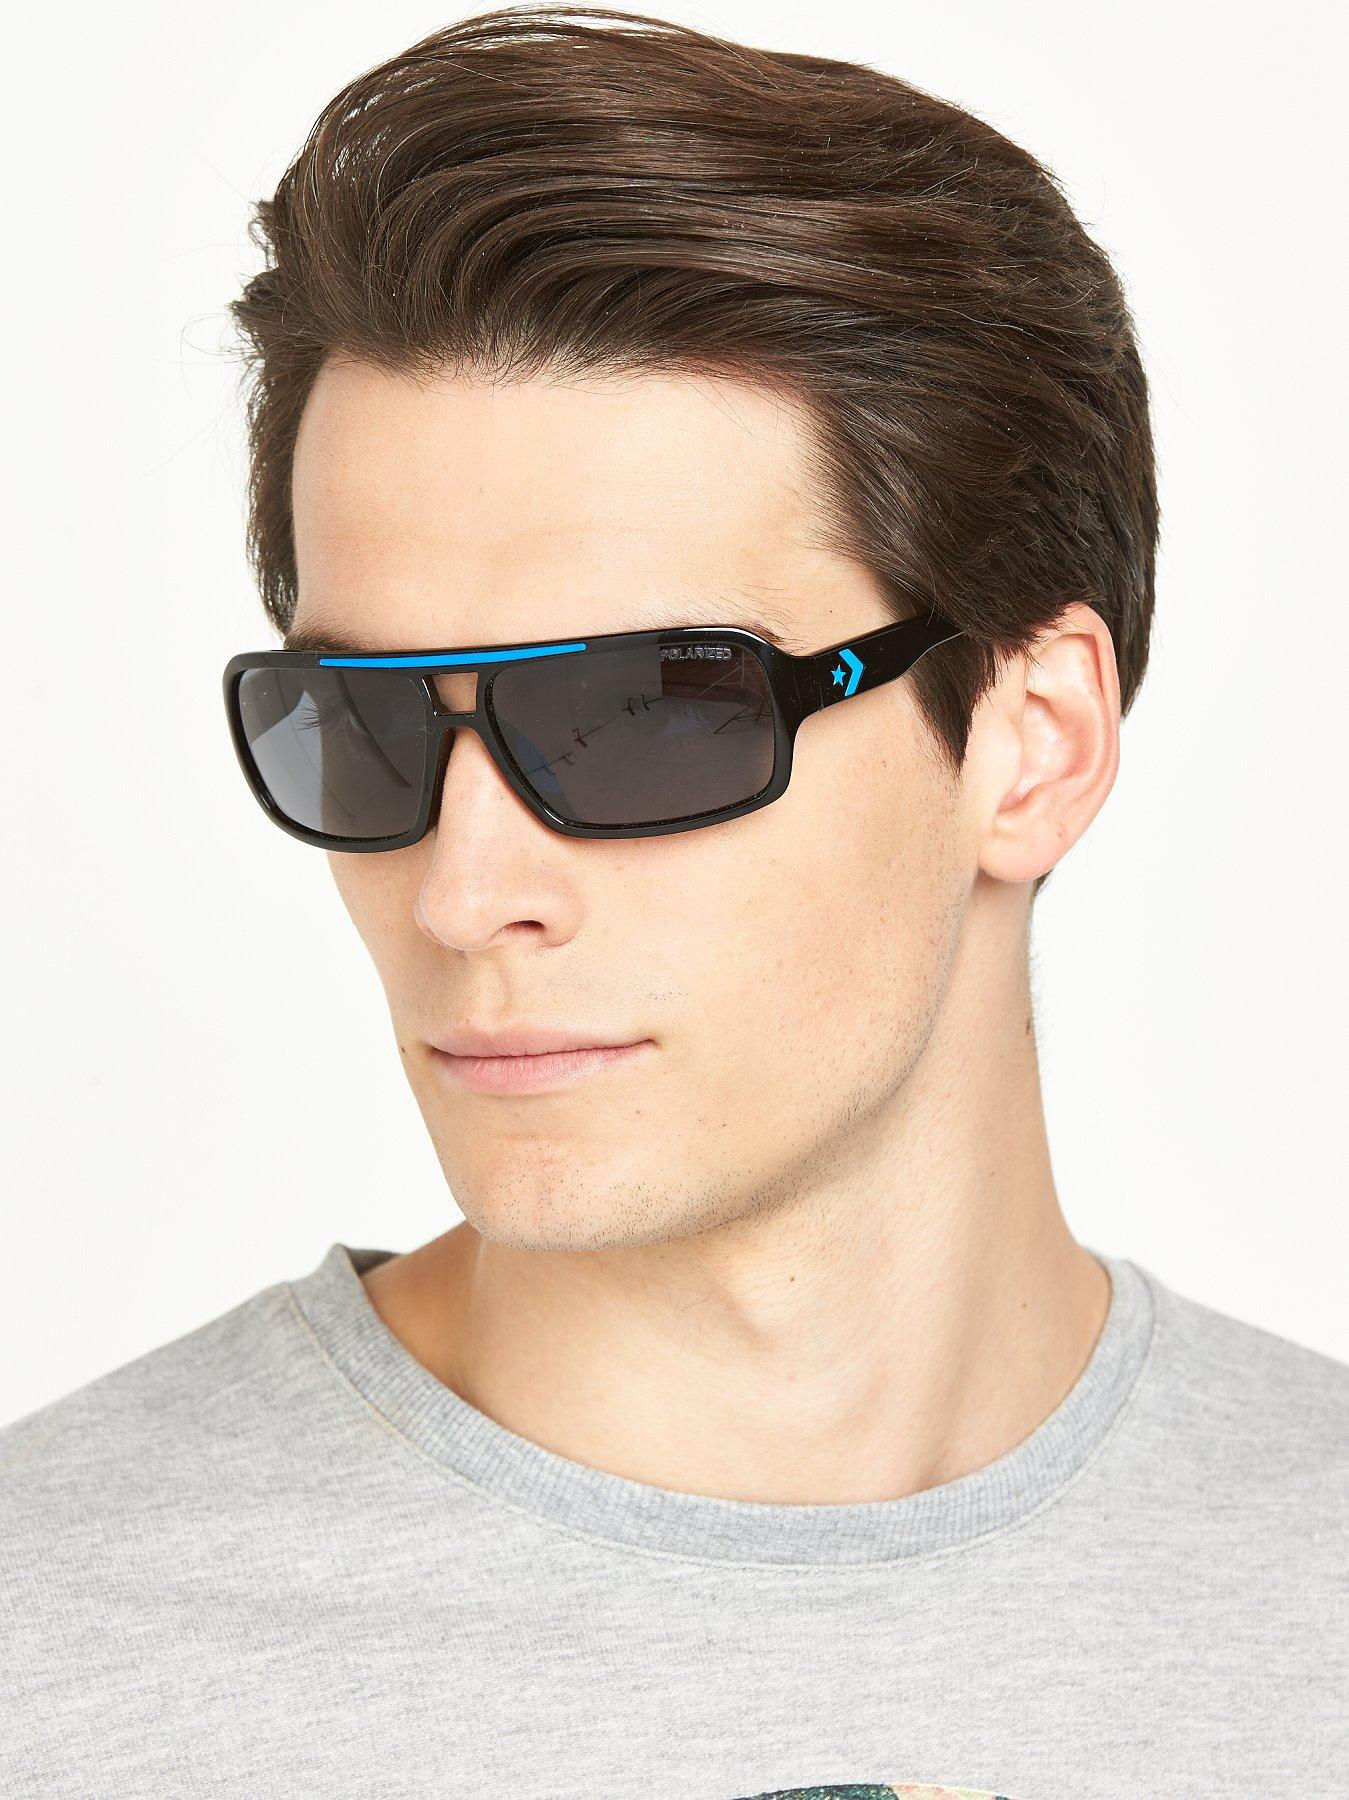 Converse Point Guard Aviator Polarised Sunglasses